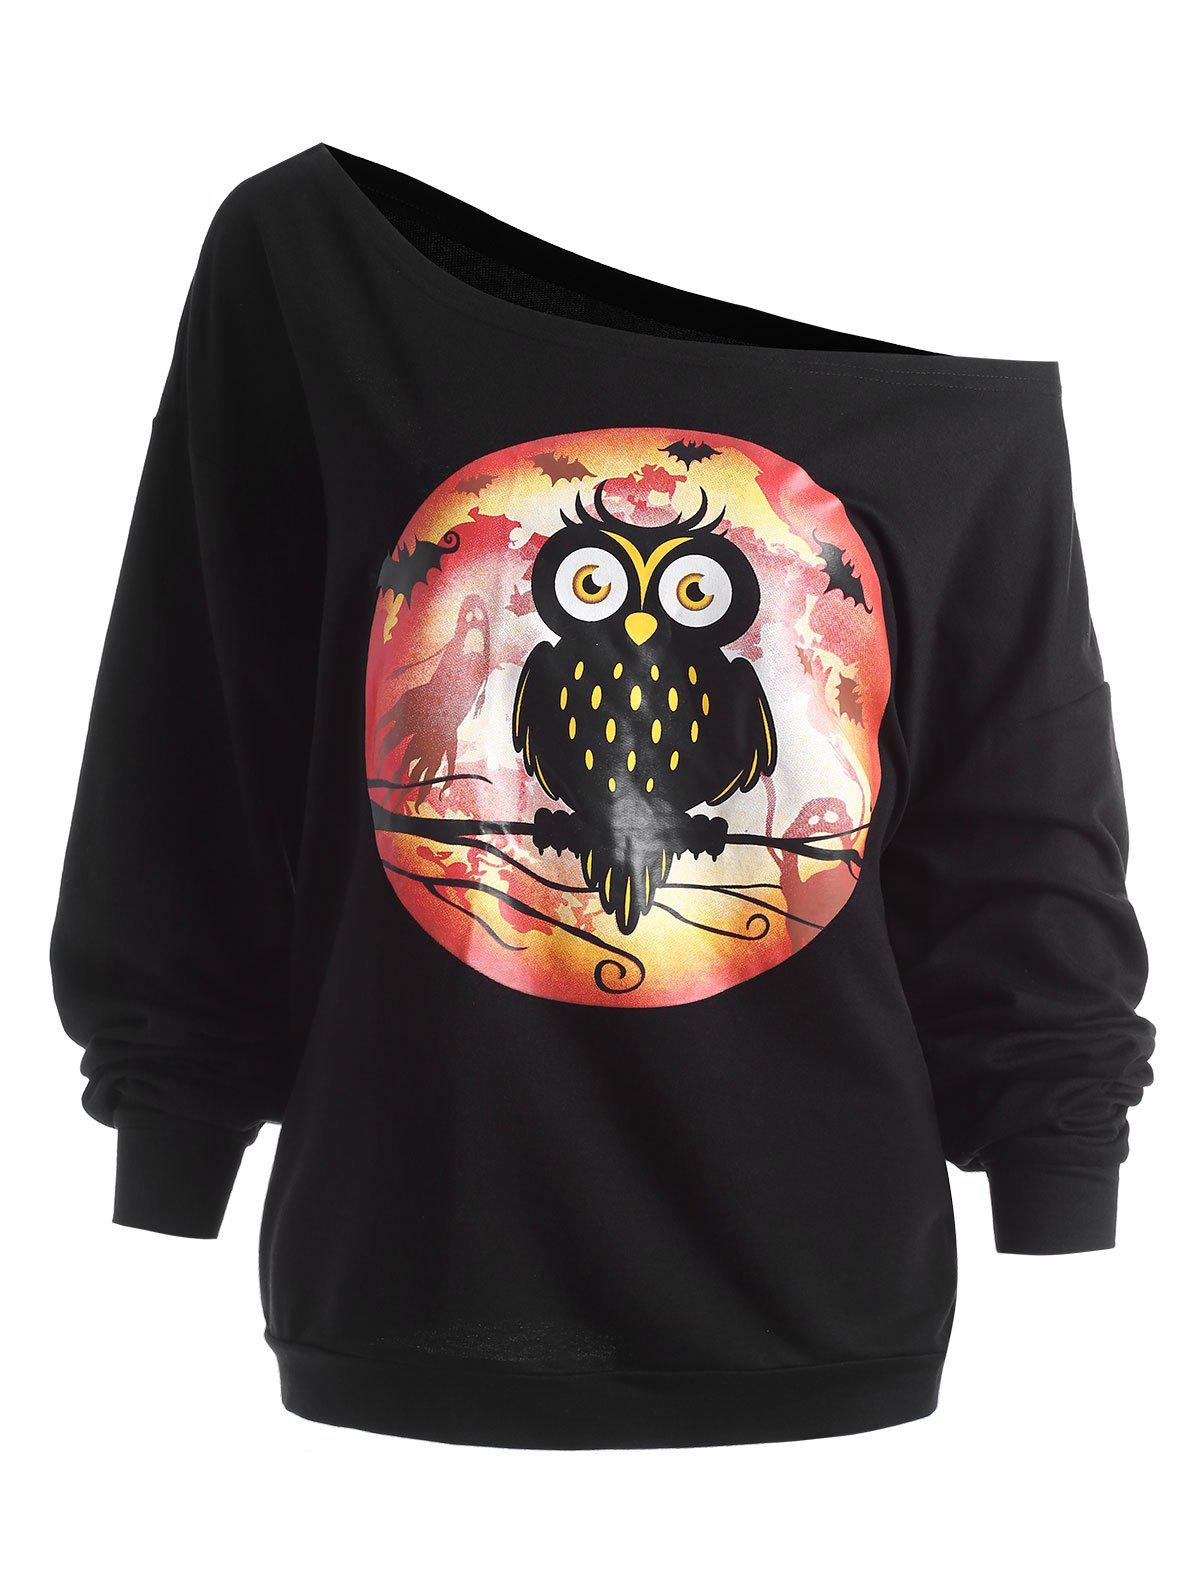 Plus Size Halloween Owl Skew Neck Sweatshirt plus size halloween bat stars skew neck sweatshirt